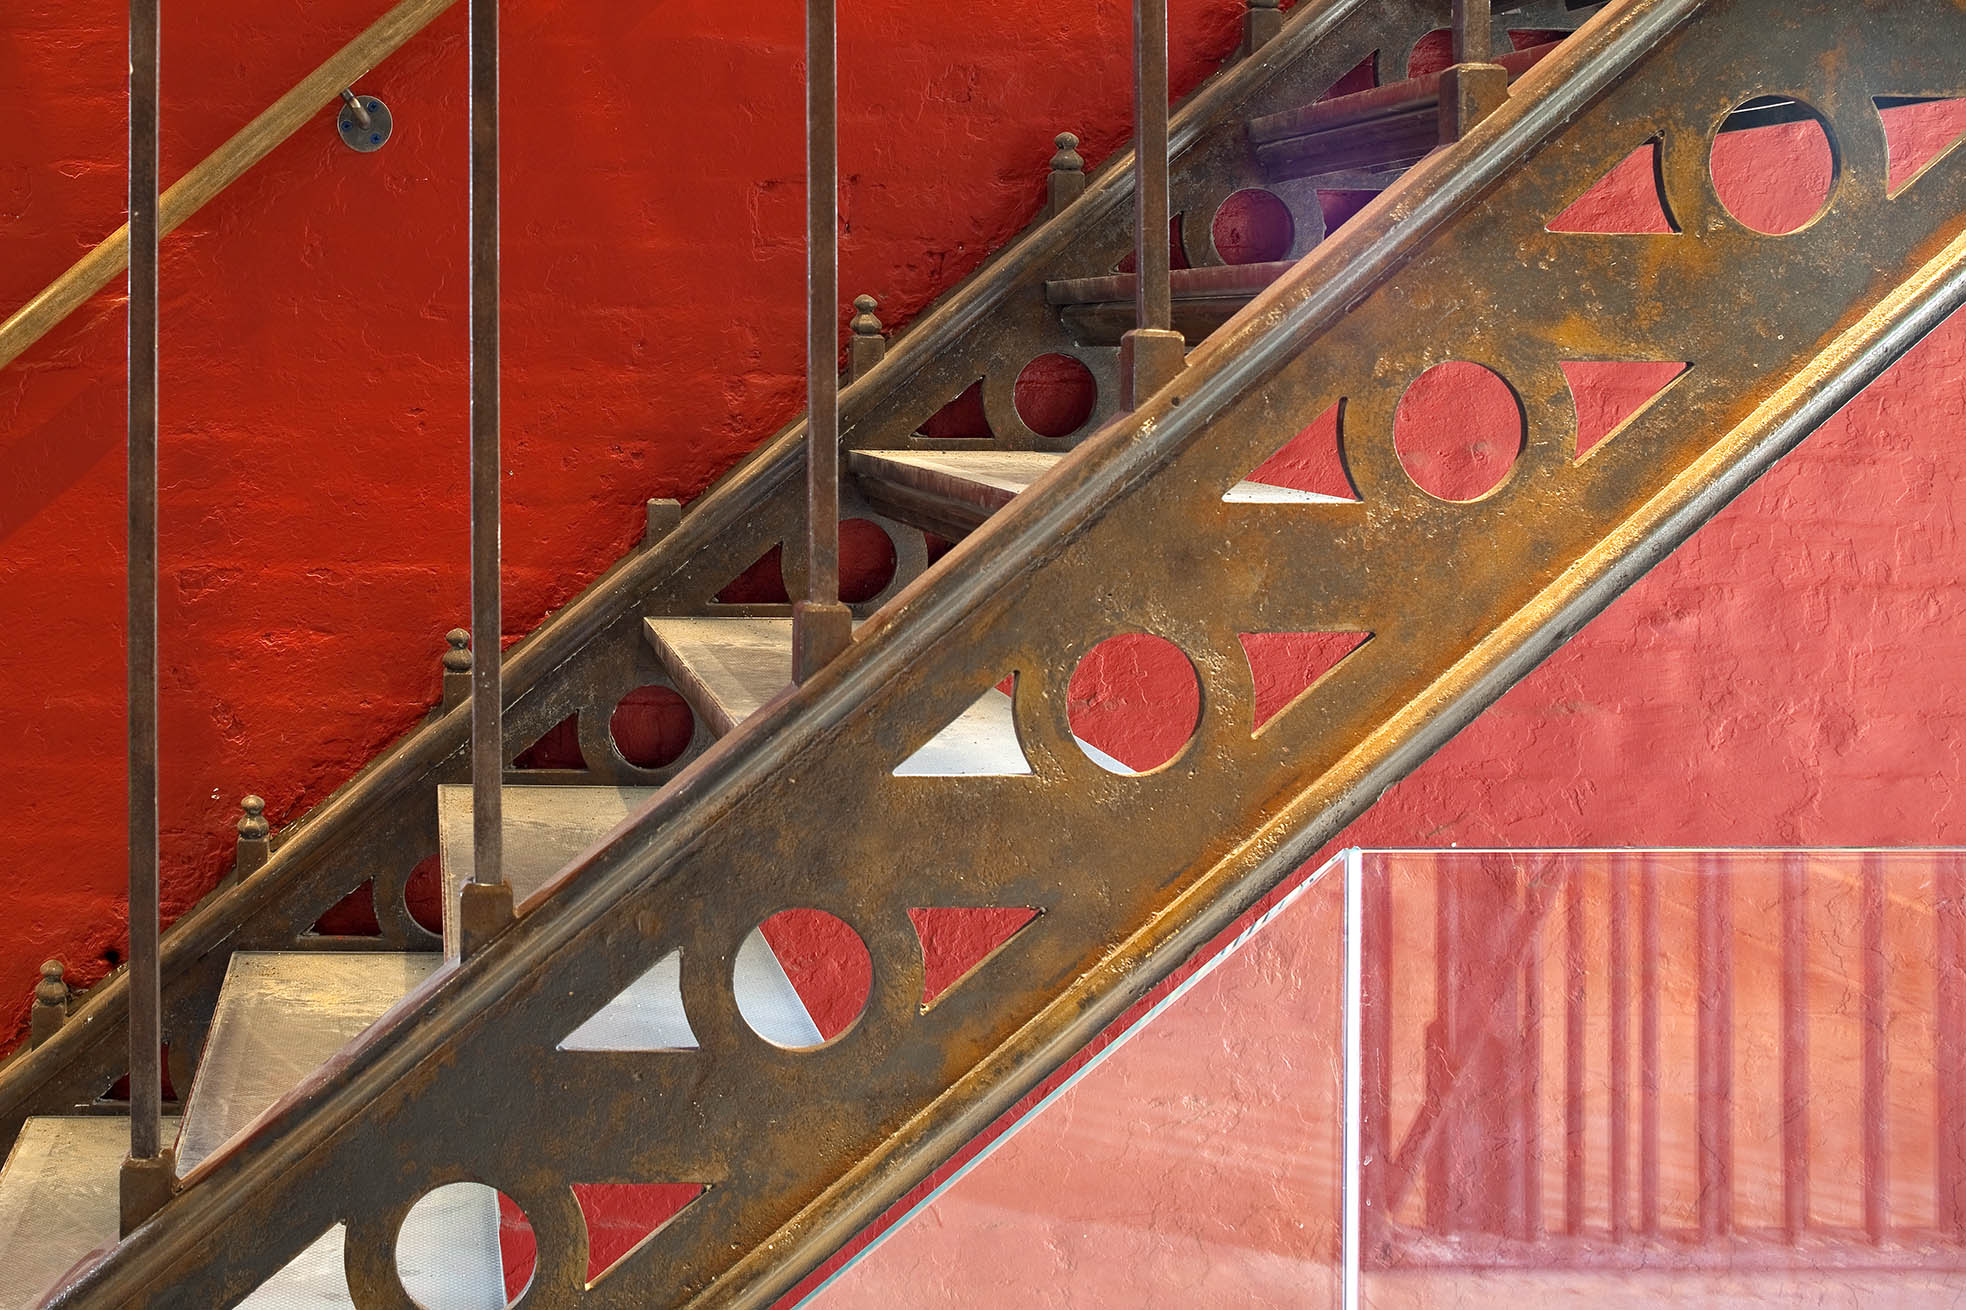 Detail of copper staircase with red painted brick wall in background